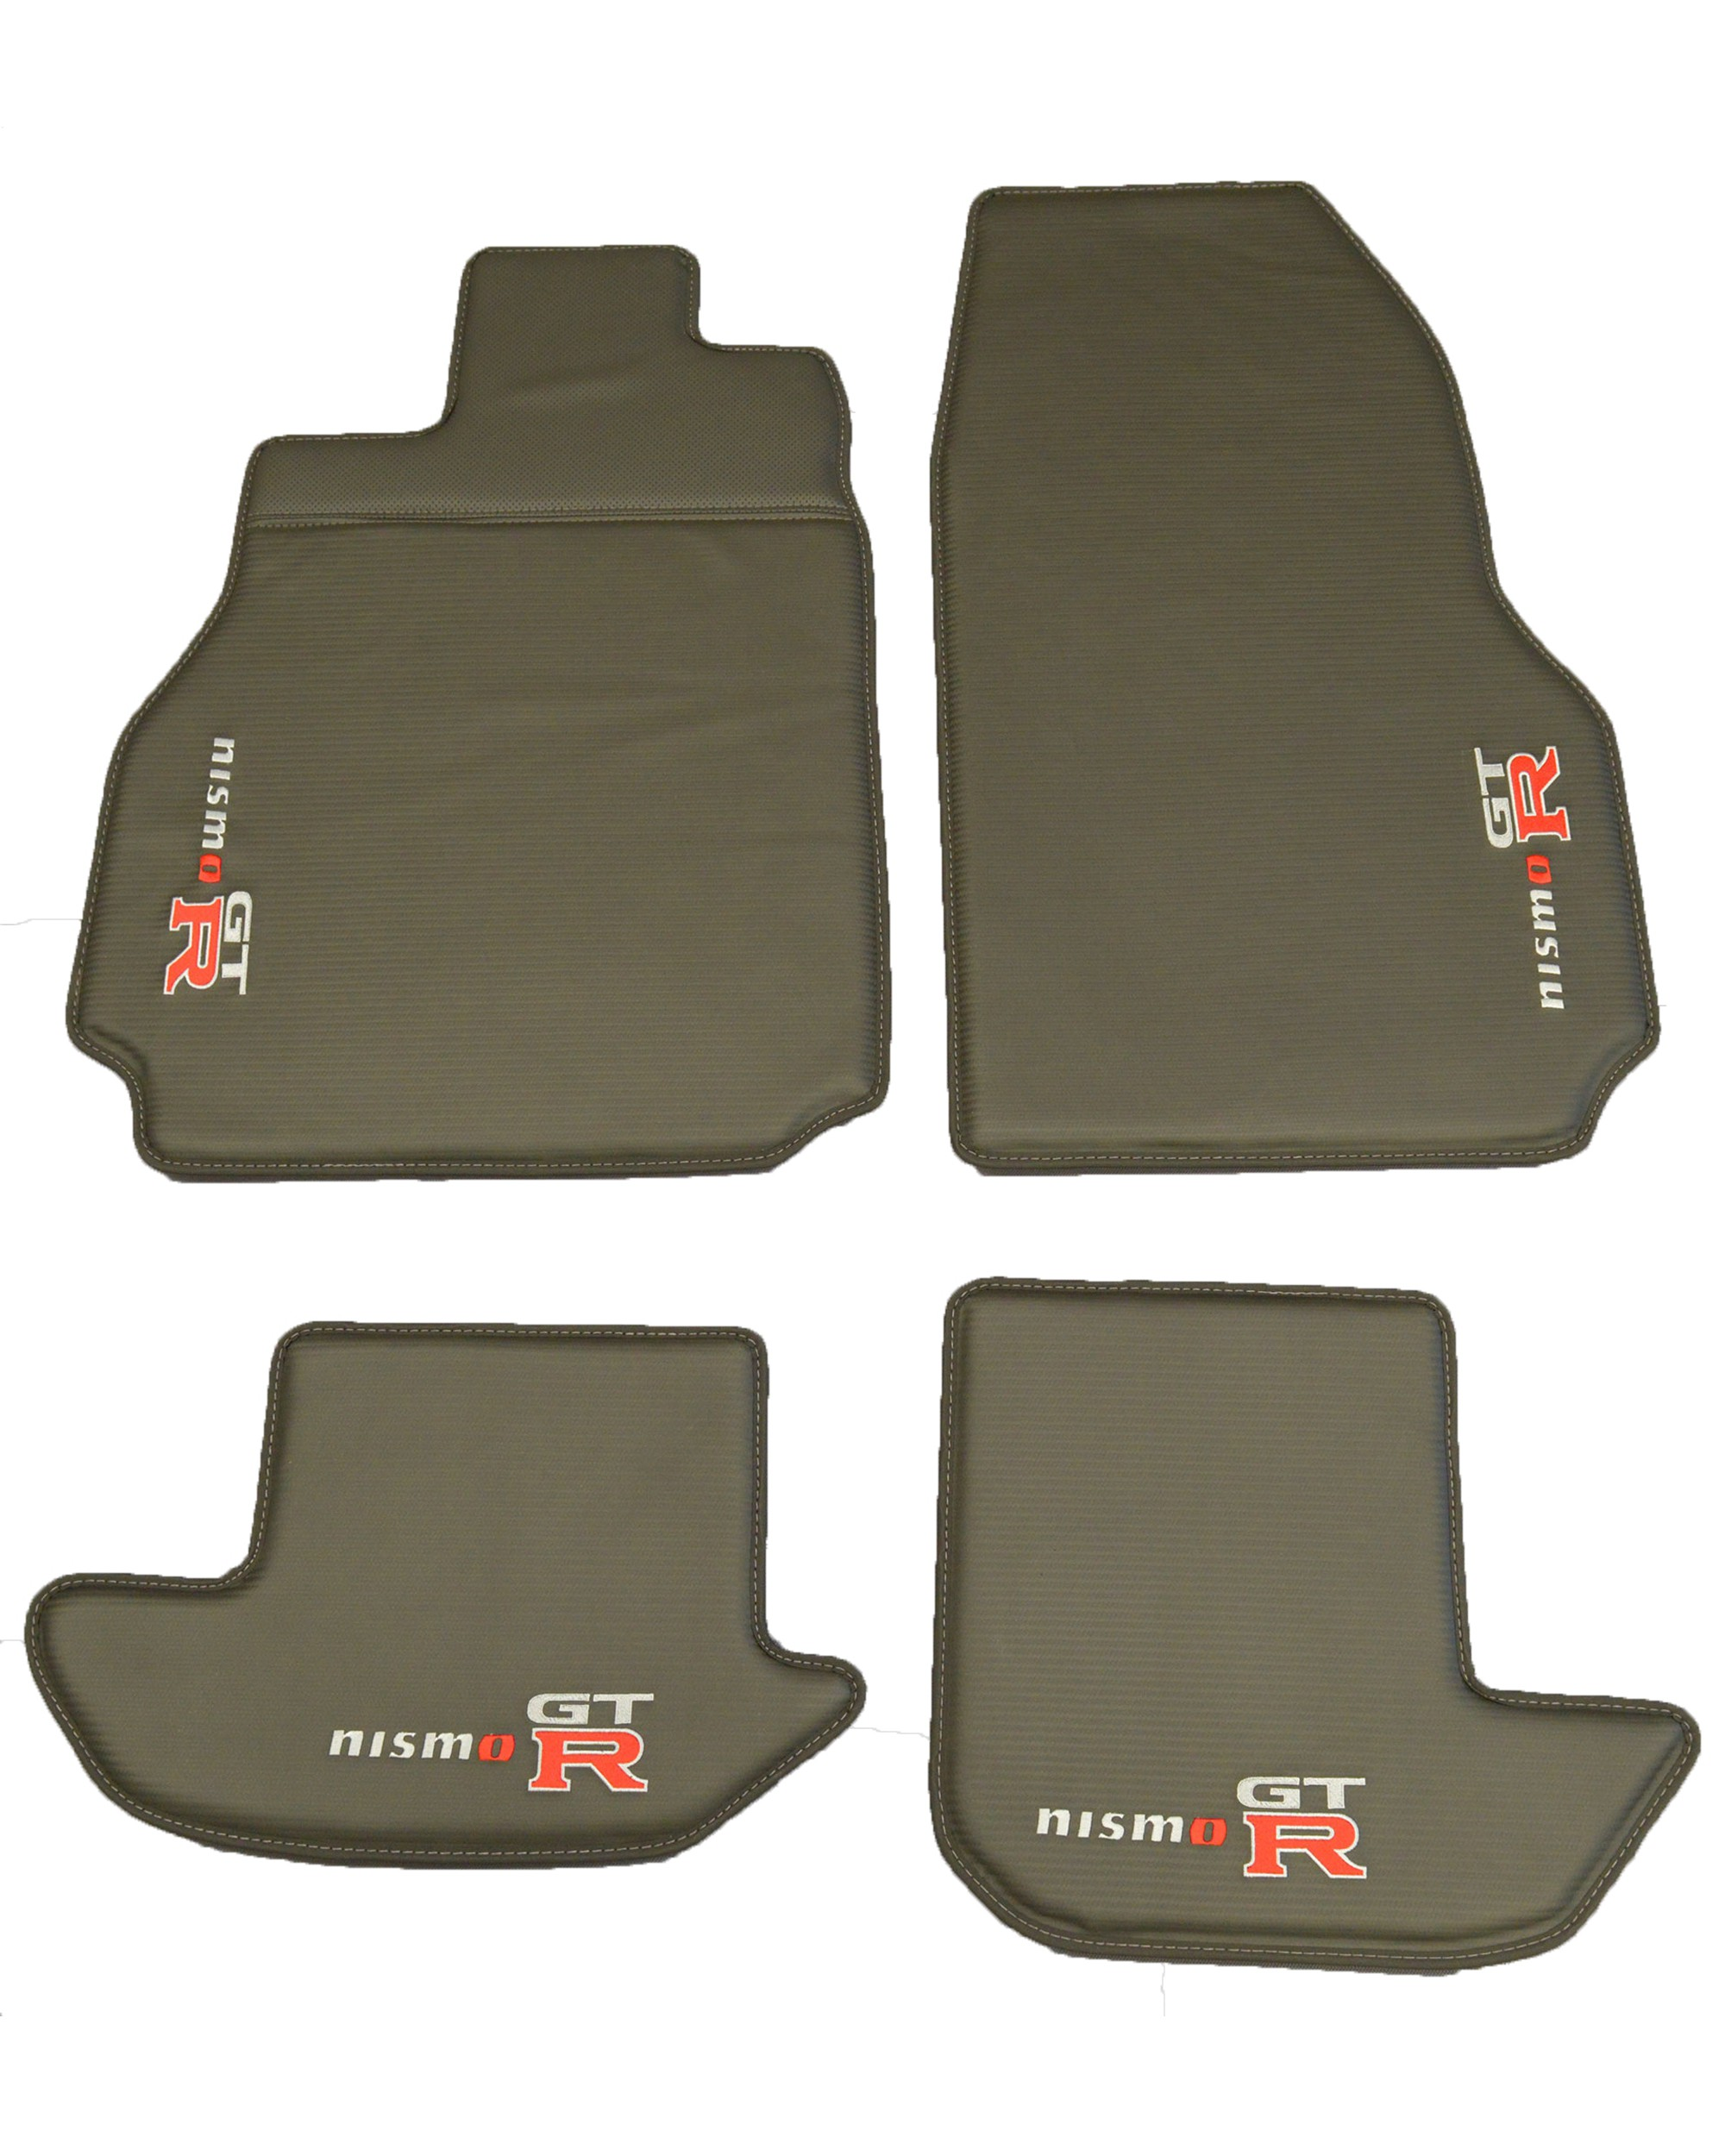 Nissan GTR R35 Nismo Tailored Luxury Floor Mats